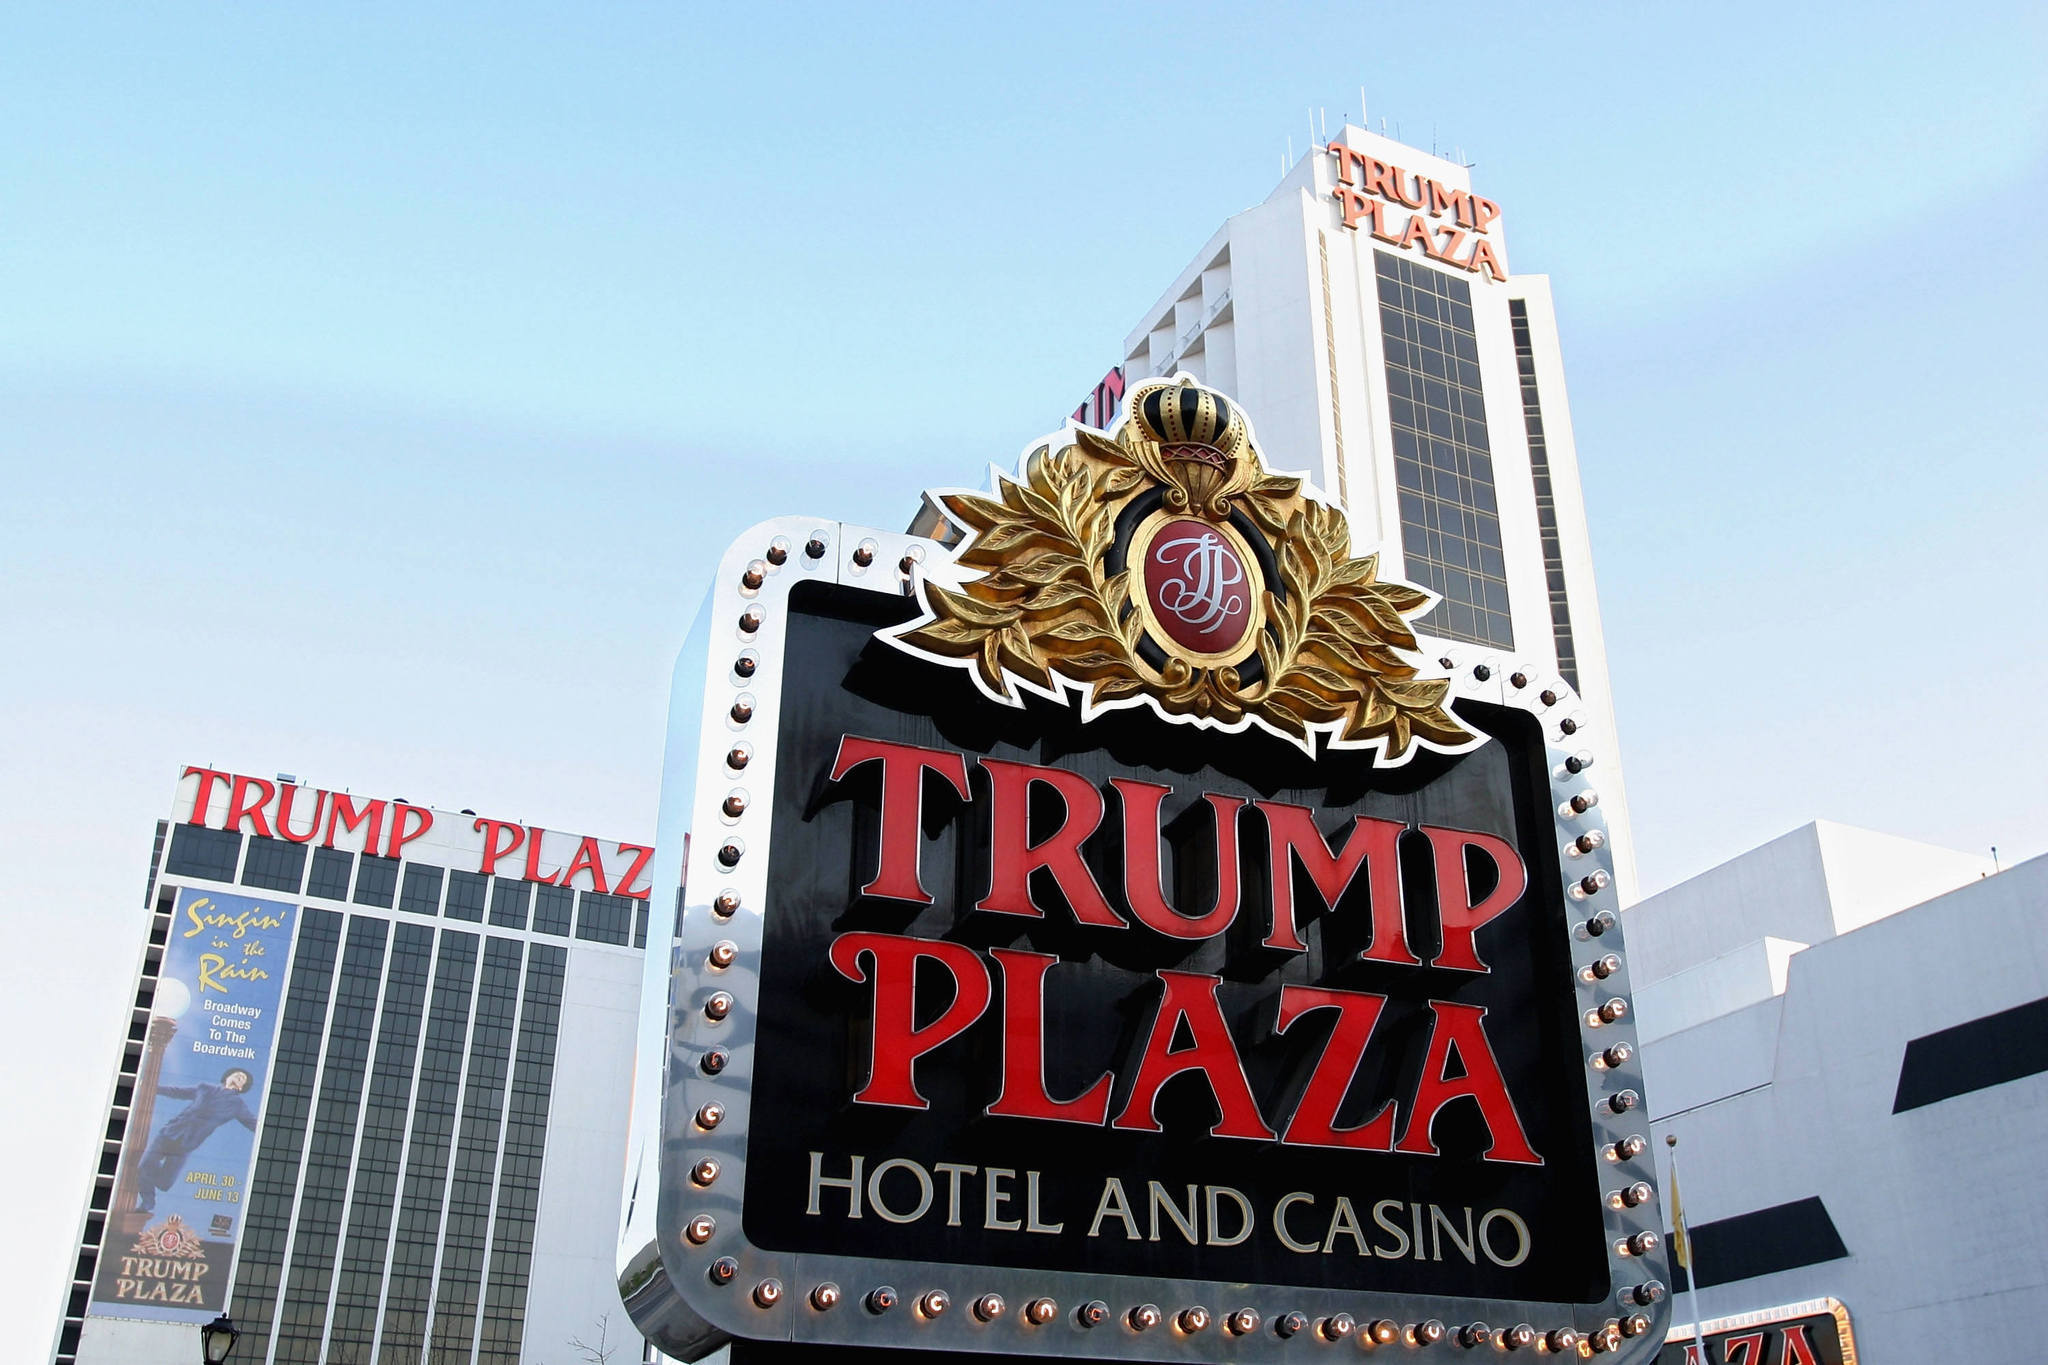 A sign marks the Trump Plaza Hotel and Casino May 8, 2004 in Atlantic City, N.J.